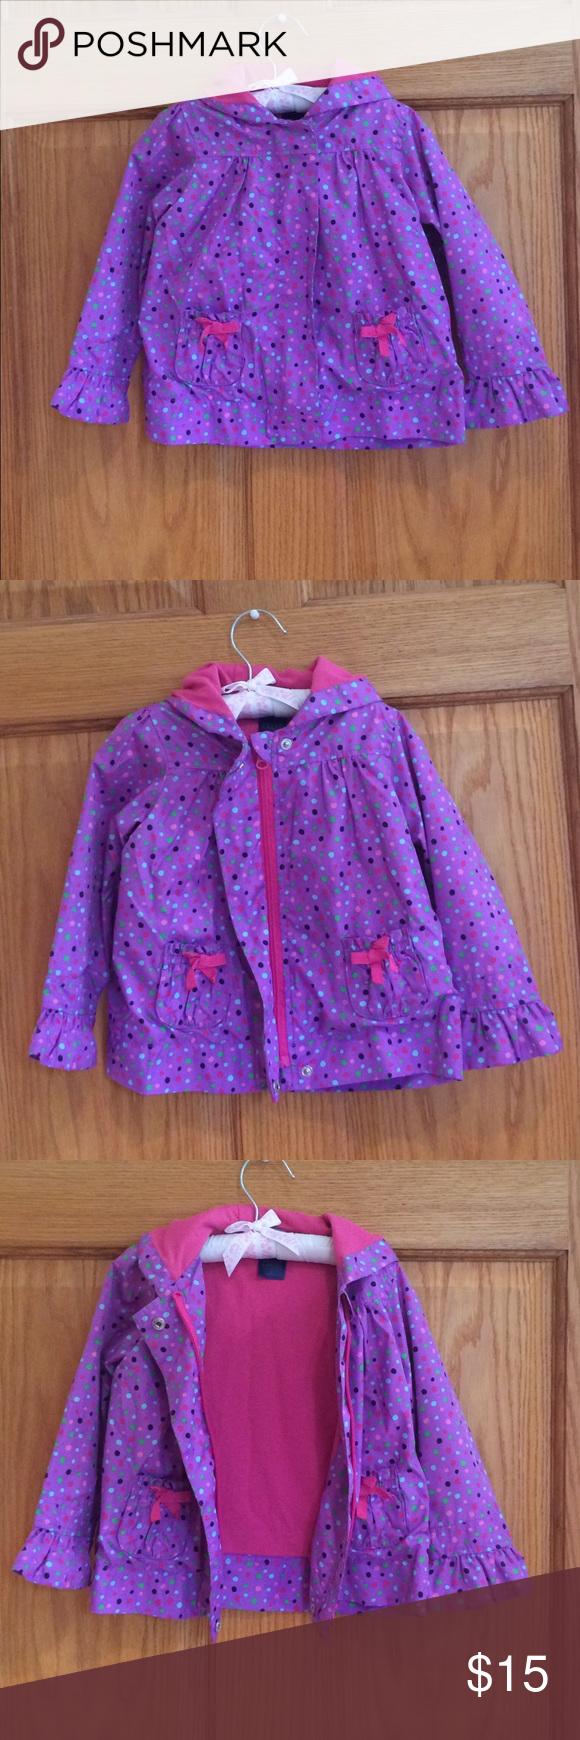 Falls Creek Spring Jacket Adorable, purple hooded jacket with colorful Polka dots and adorable ruffled sleeves. Two front pockets with cute bow detail. Zipper & two snap closures. Shell : 100% polyester and lining: 65% polyester and 35% cotton. Falls Creek Jackets & Coats